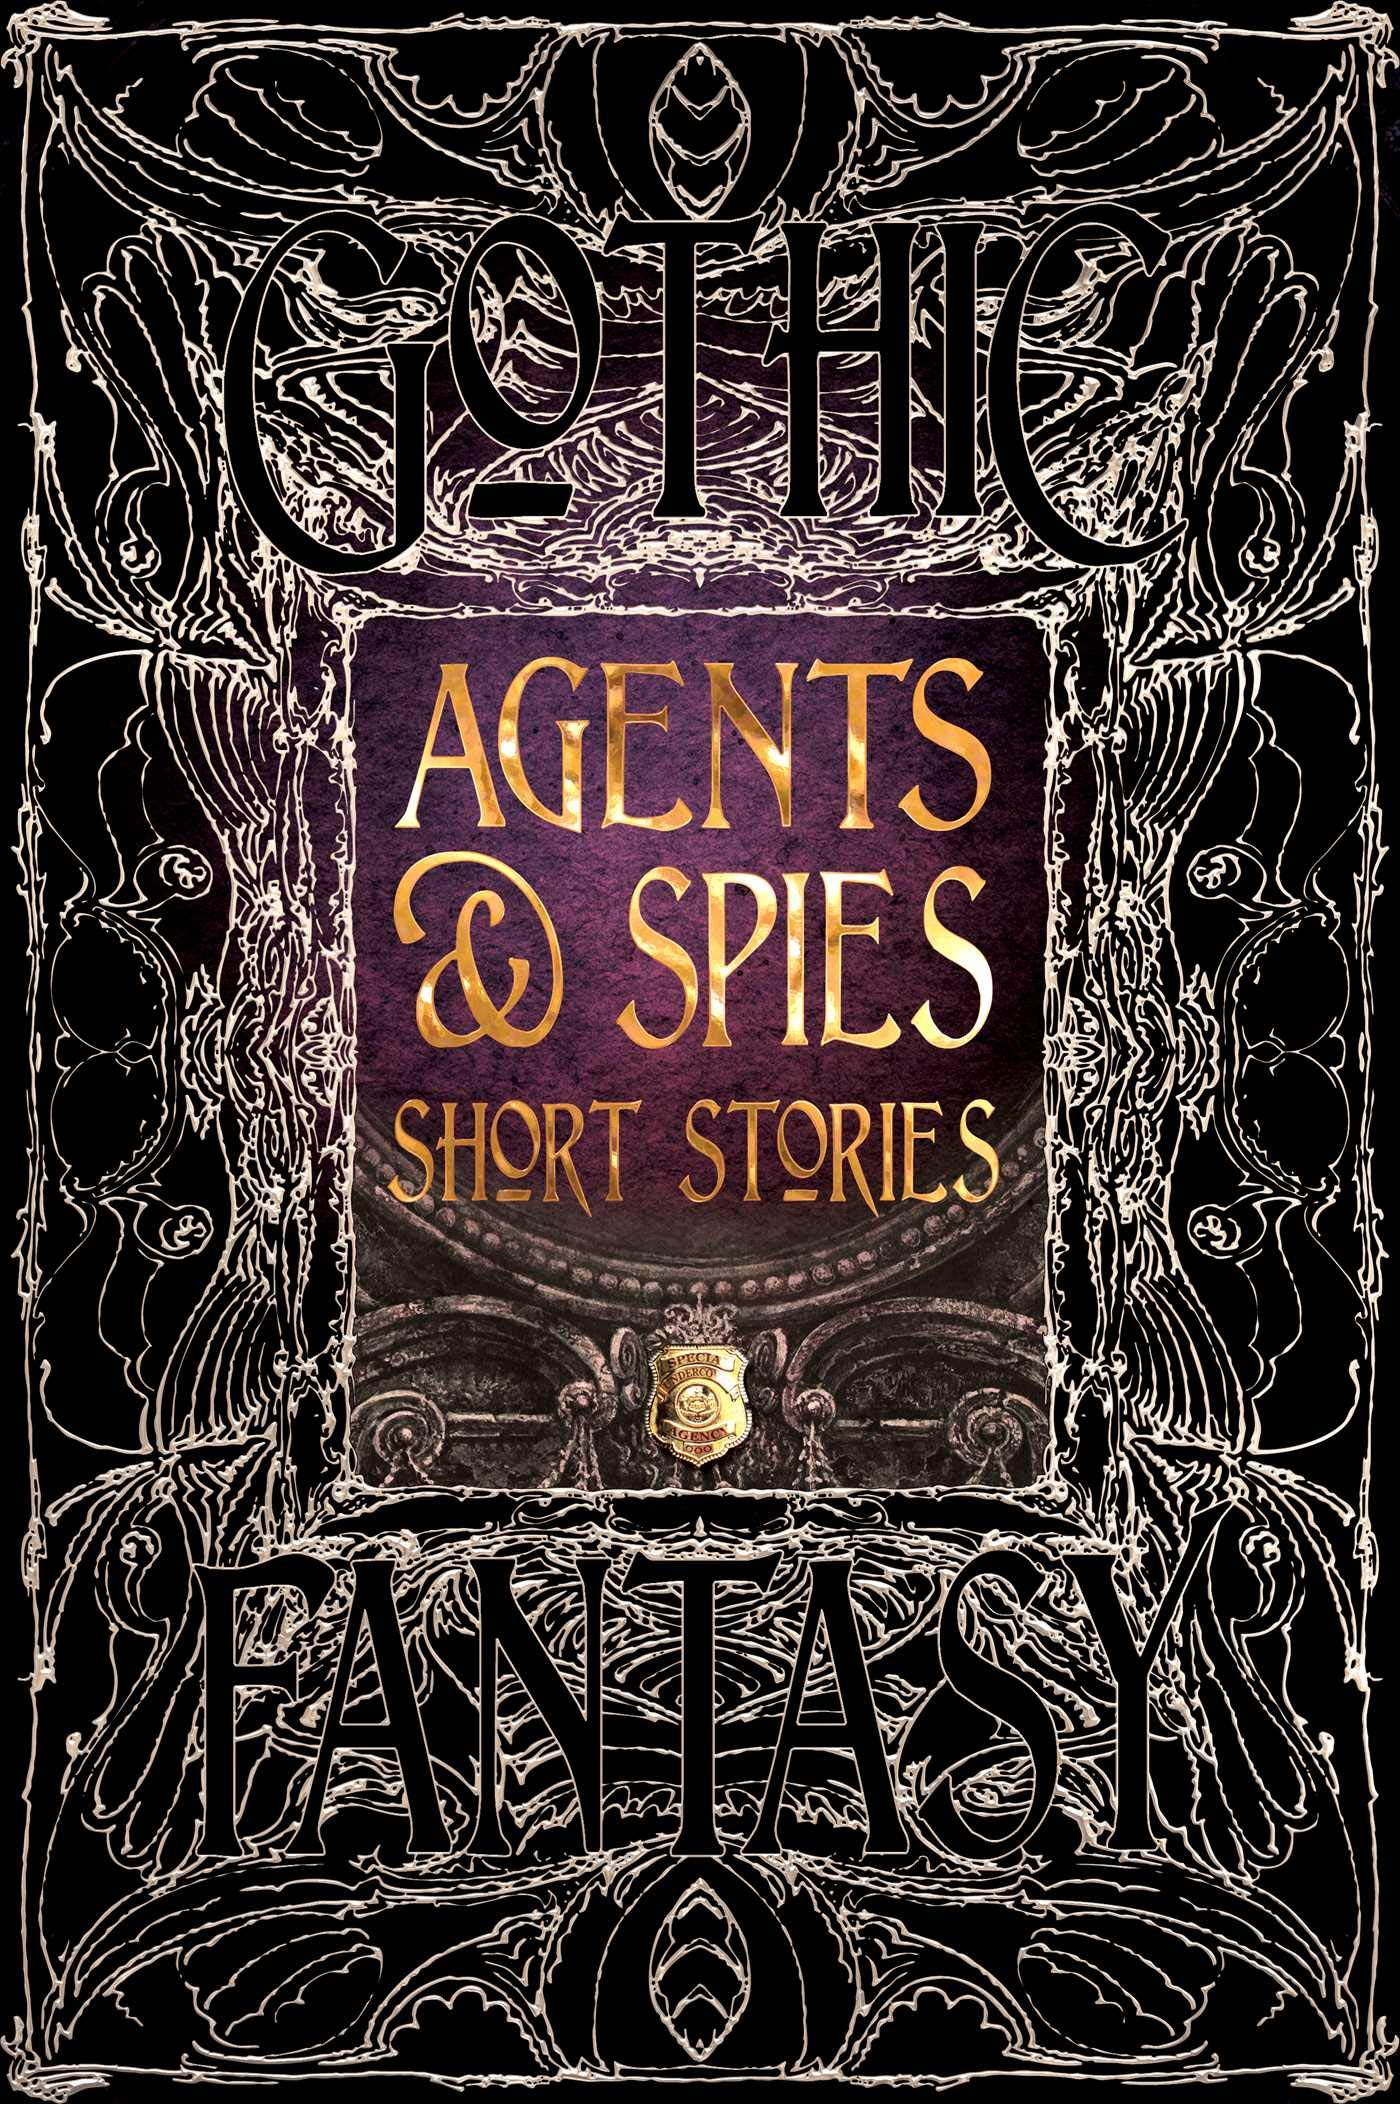 Agents & Spies Short Stories by Laura Bulbeck, Martin Edwards